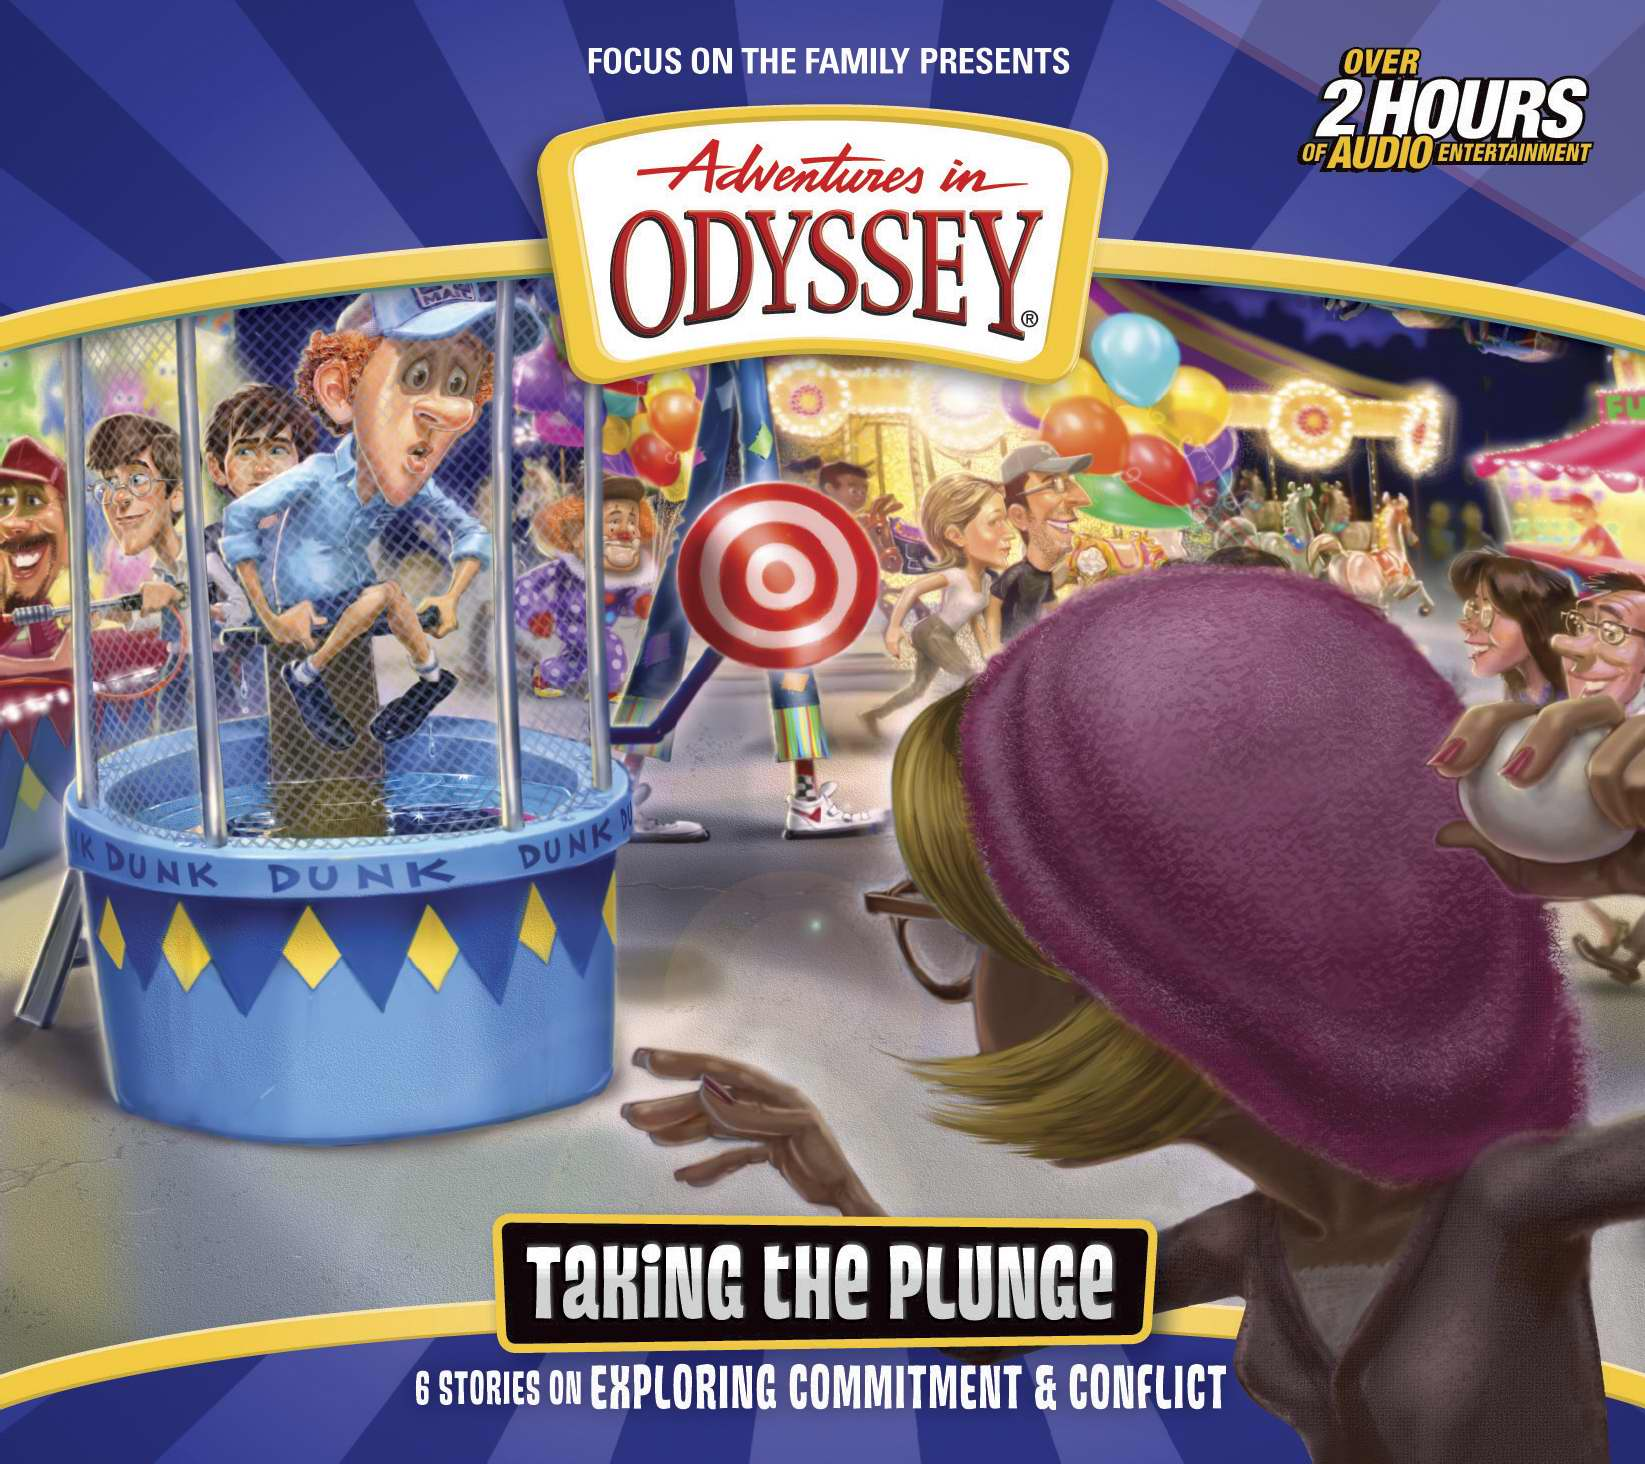 Audio CD-Adventures In Odyssey V59: Taking The Plunge (2 CD) by FOCUS ON THE FAMILY